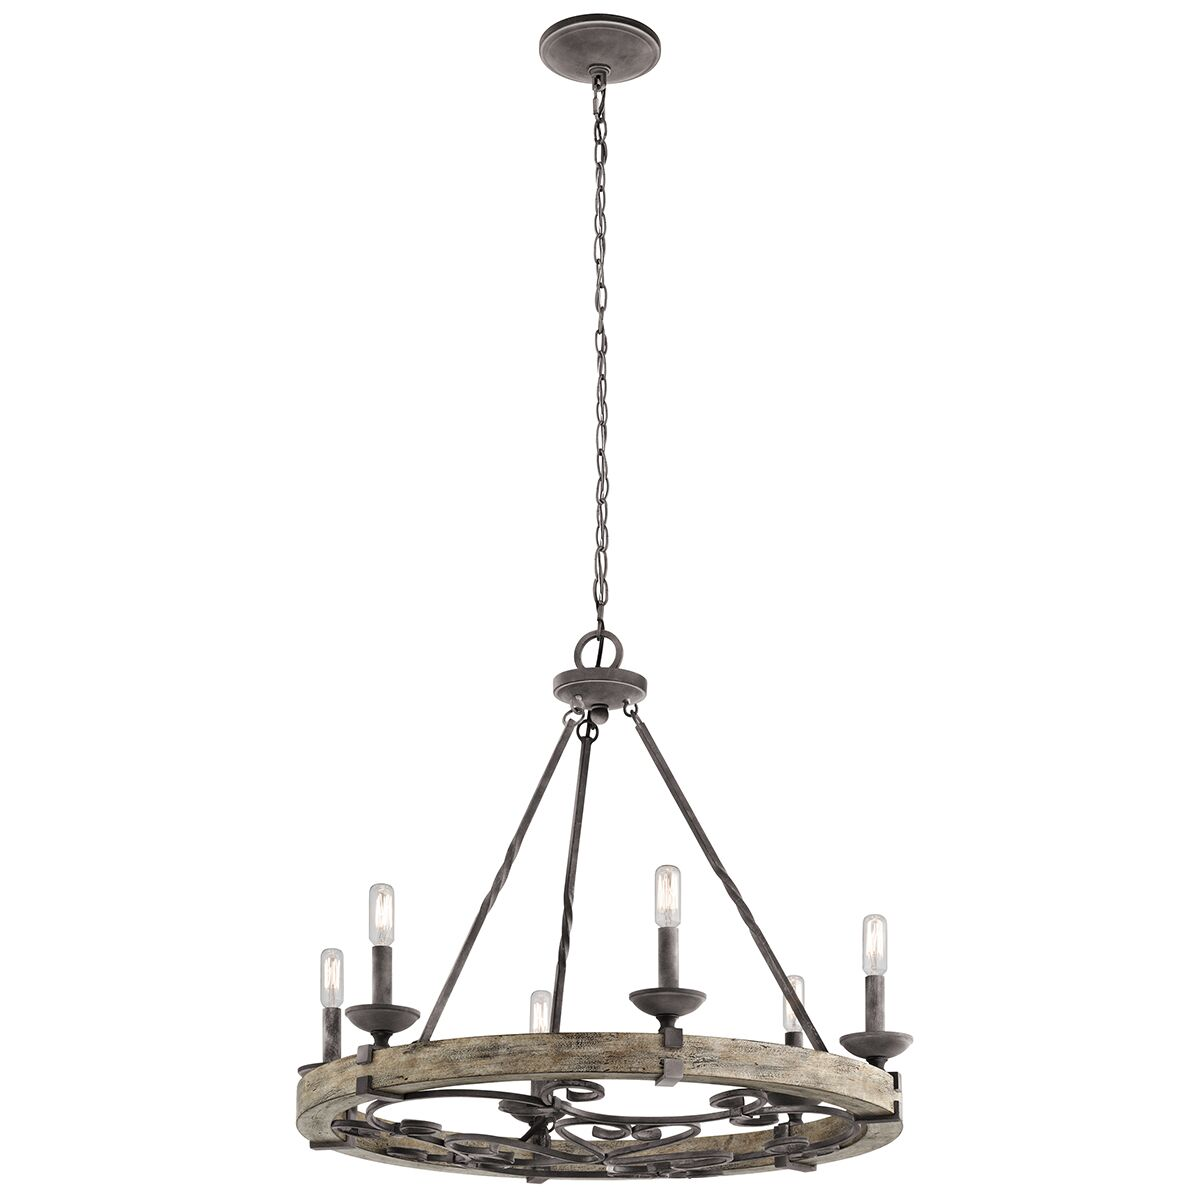 Yasmin 6-Light Wagon Wheel Chandelier